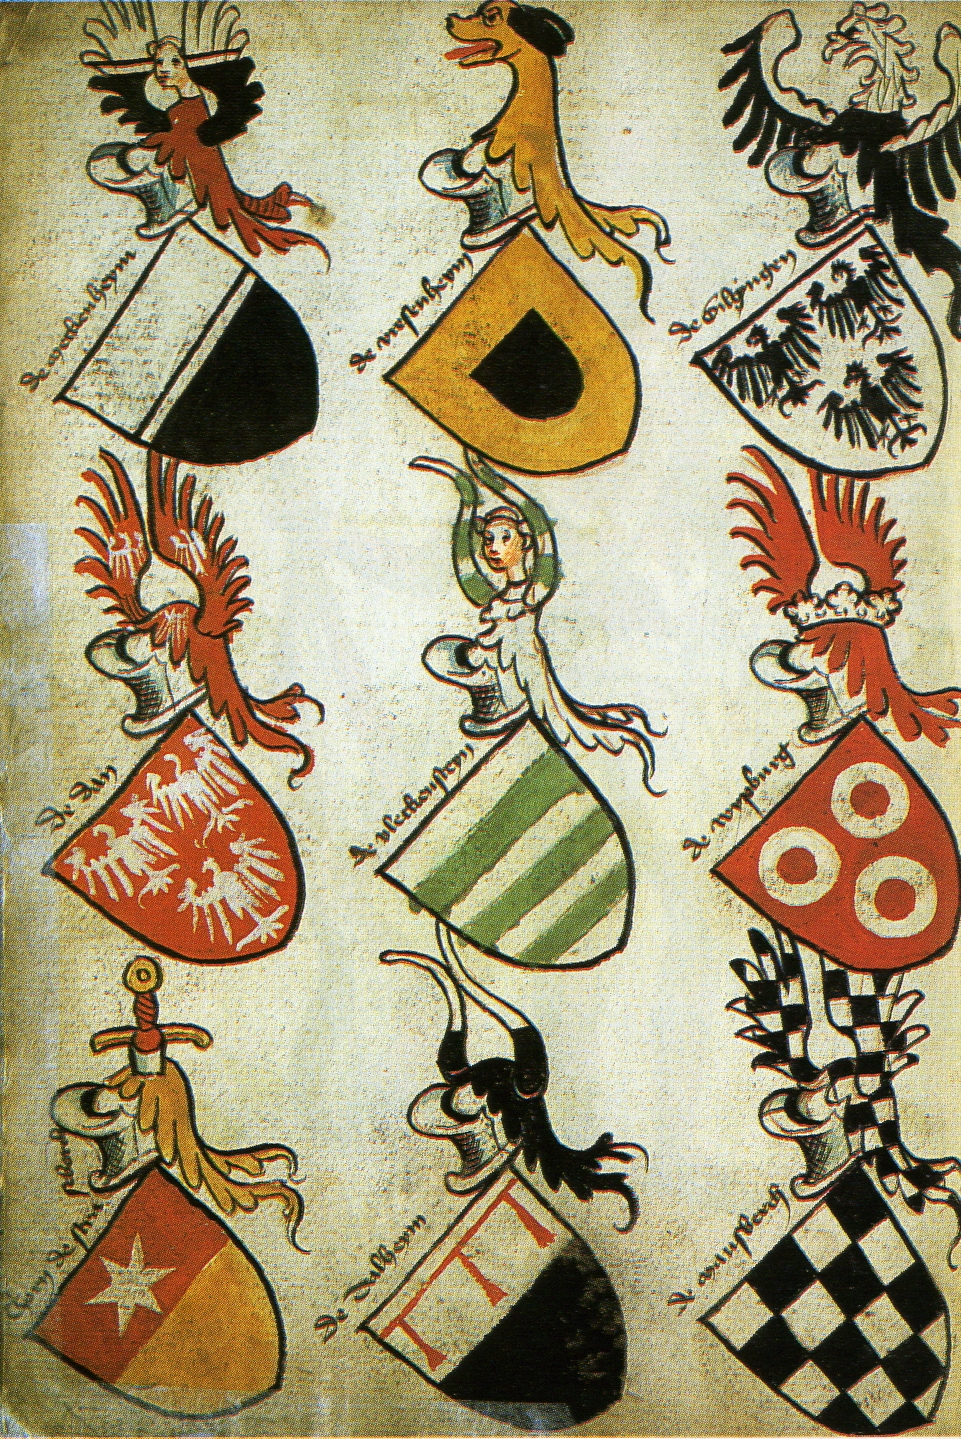 heraldry in midevil times essay The regulation of english heraldry between 1530 and 1688 has led many writers  to project back into the middle ages concepts and beliefs of later times in  particular, one often sees the claim made that, in medieval england, arms were  restricted to the  one aim of this essay is to debunk these notions.